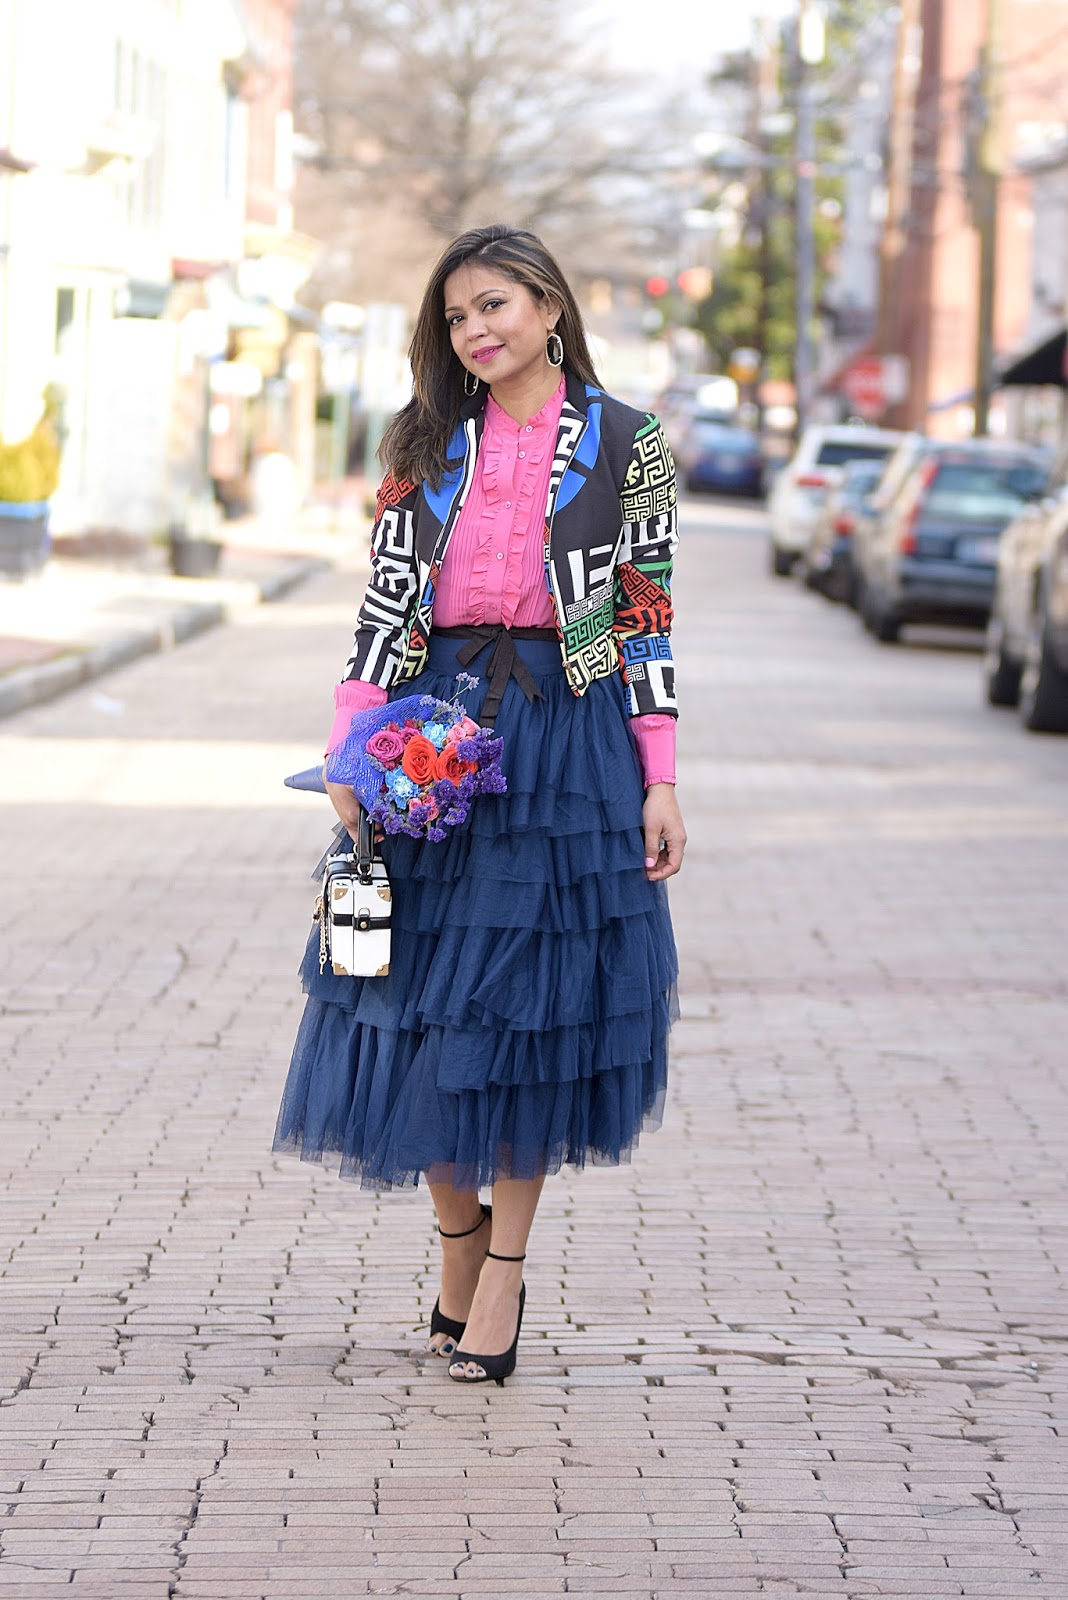 asos tulle skirt, silk blouse, outfit